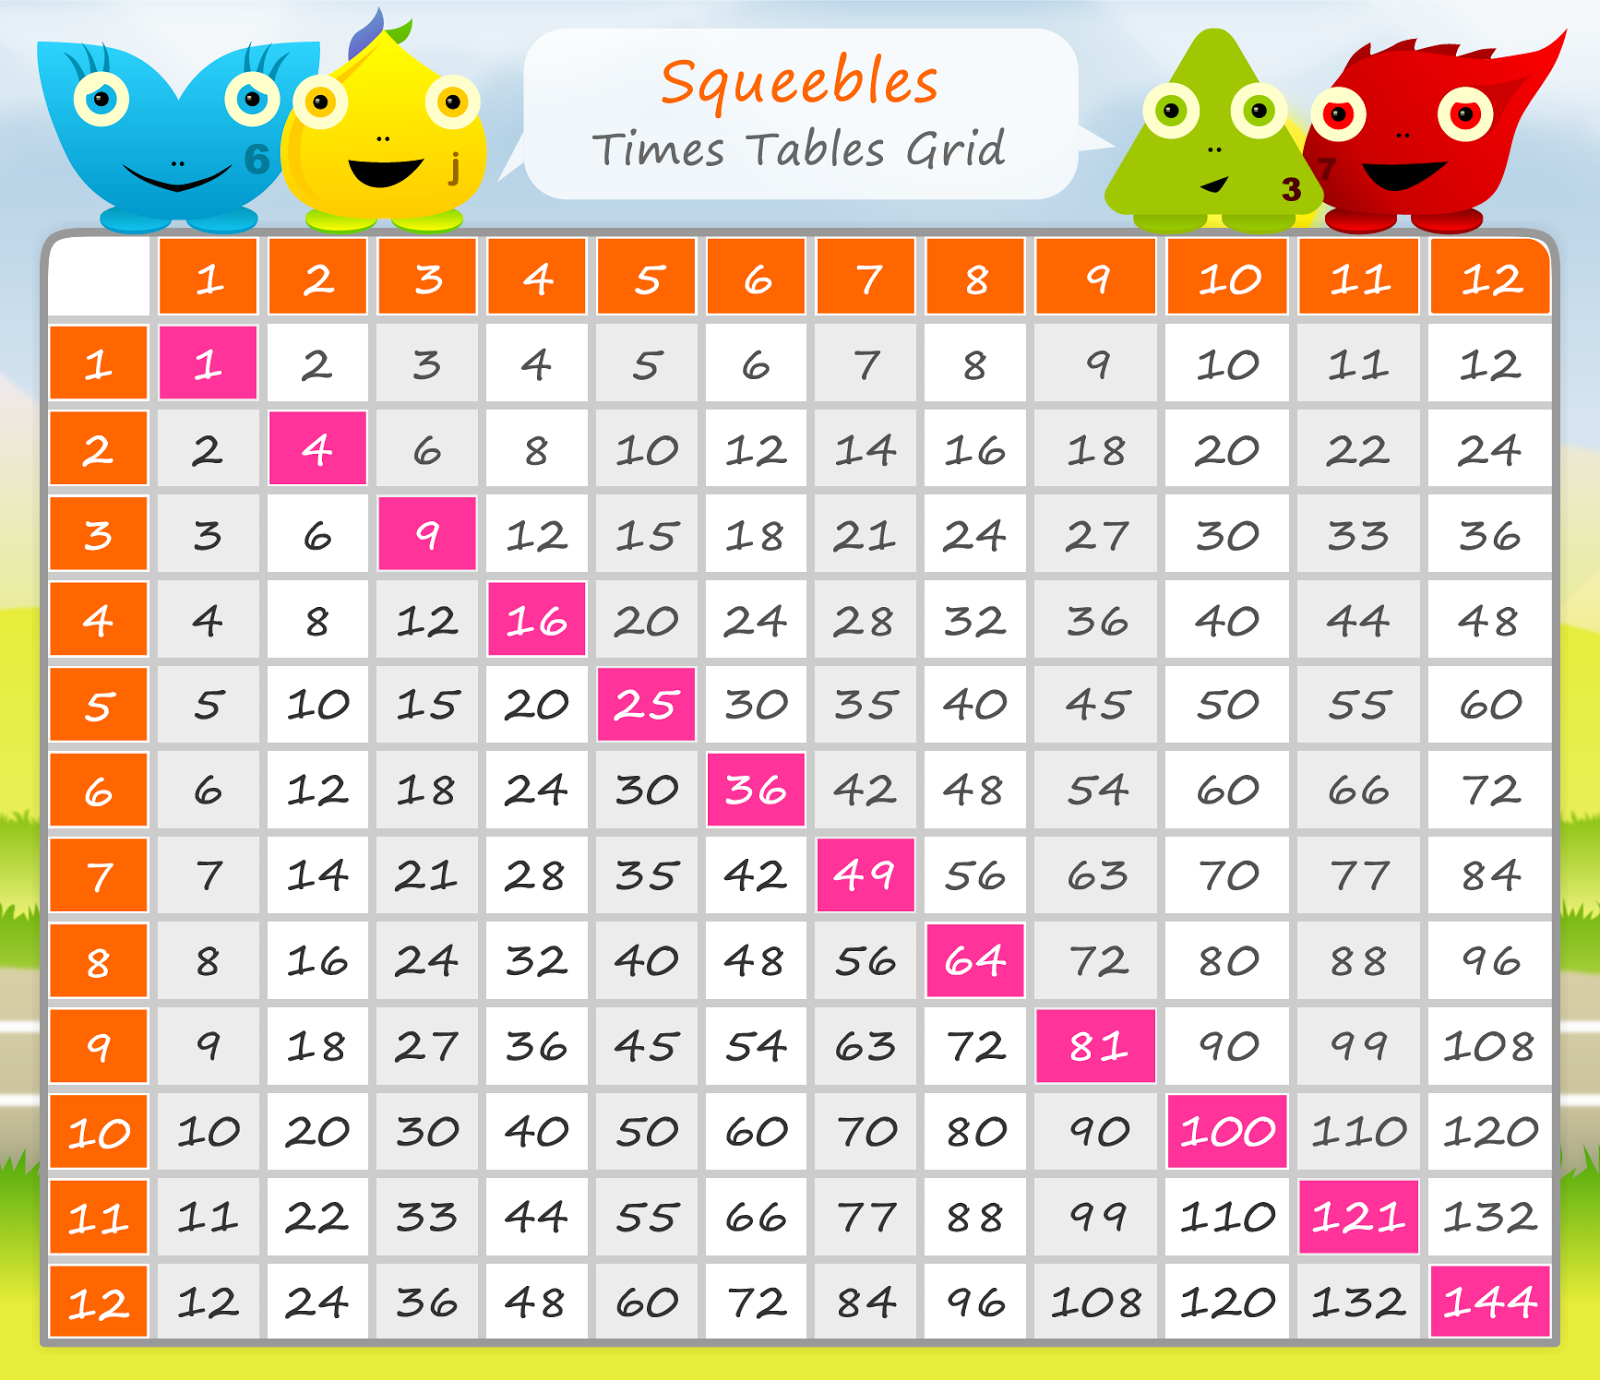 Room 5 39 S Blog Times Tables